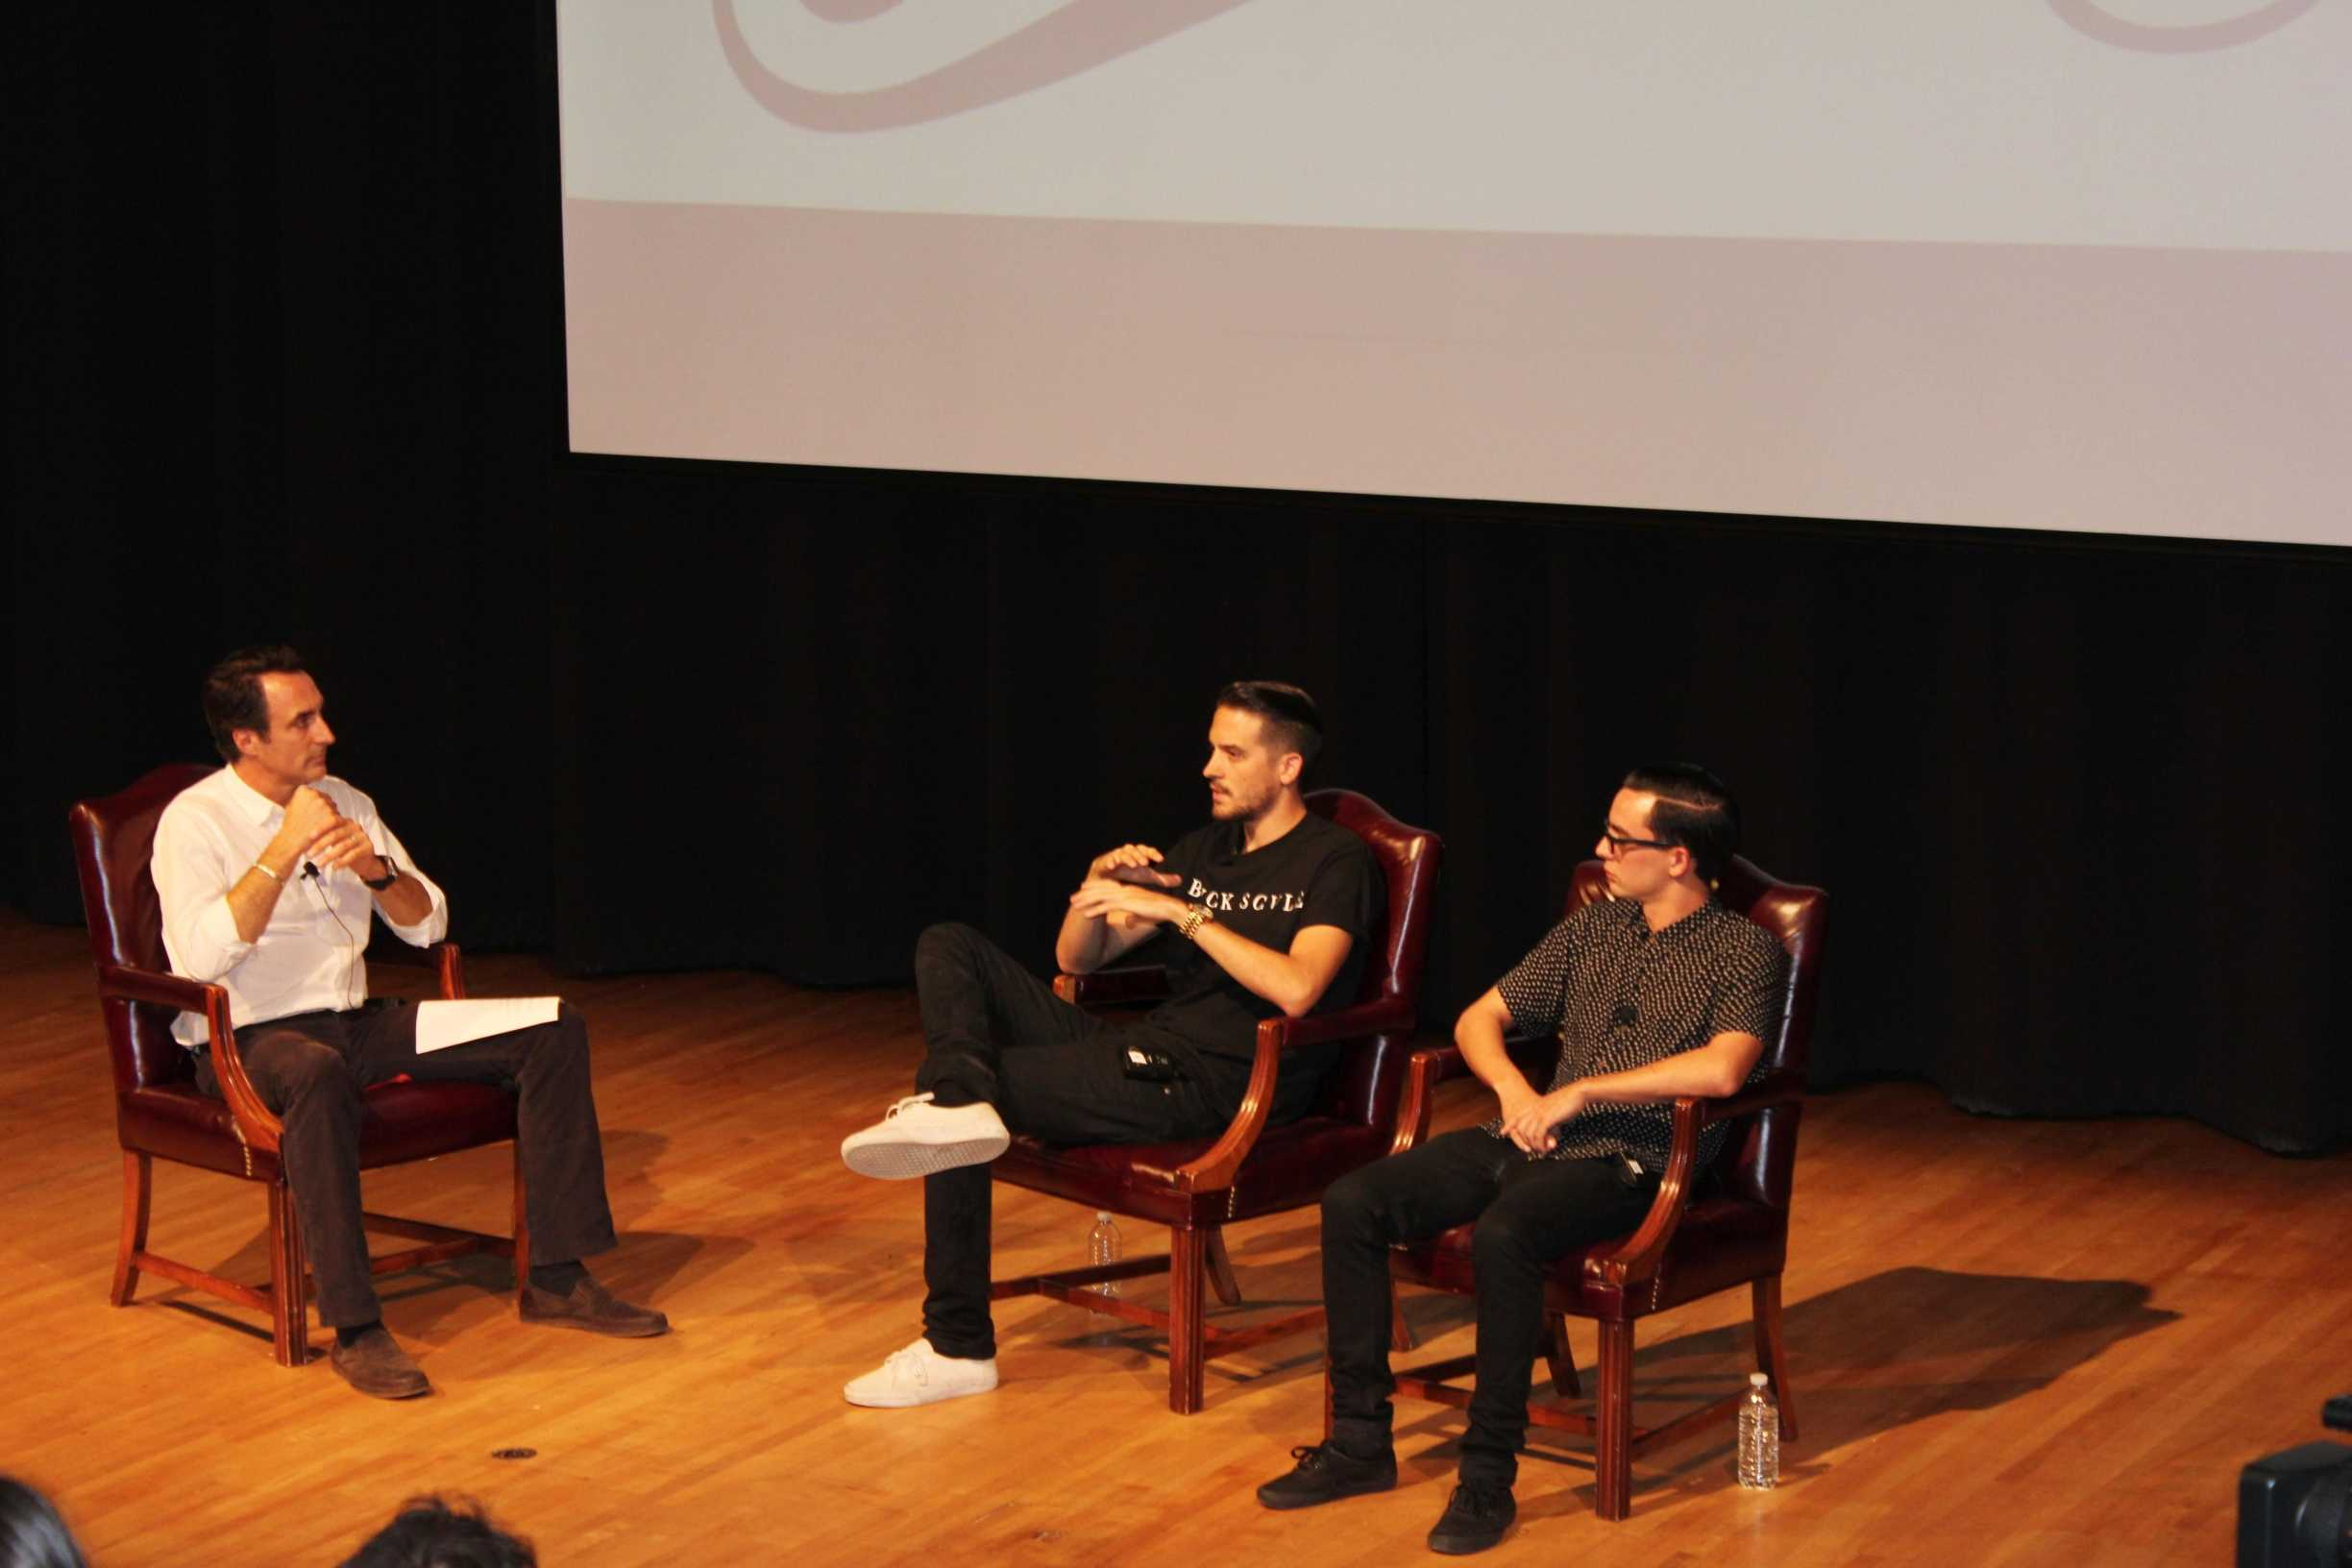 Gerald Gillum (left), A'11, and Matt Bauerschmidt (right), A'10, talk to a room of Loyola music industry students. On Sept. 16 in Nunemaker Hall, the pair spoke as a part of the music industry program's weekly forum.